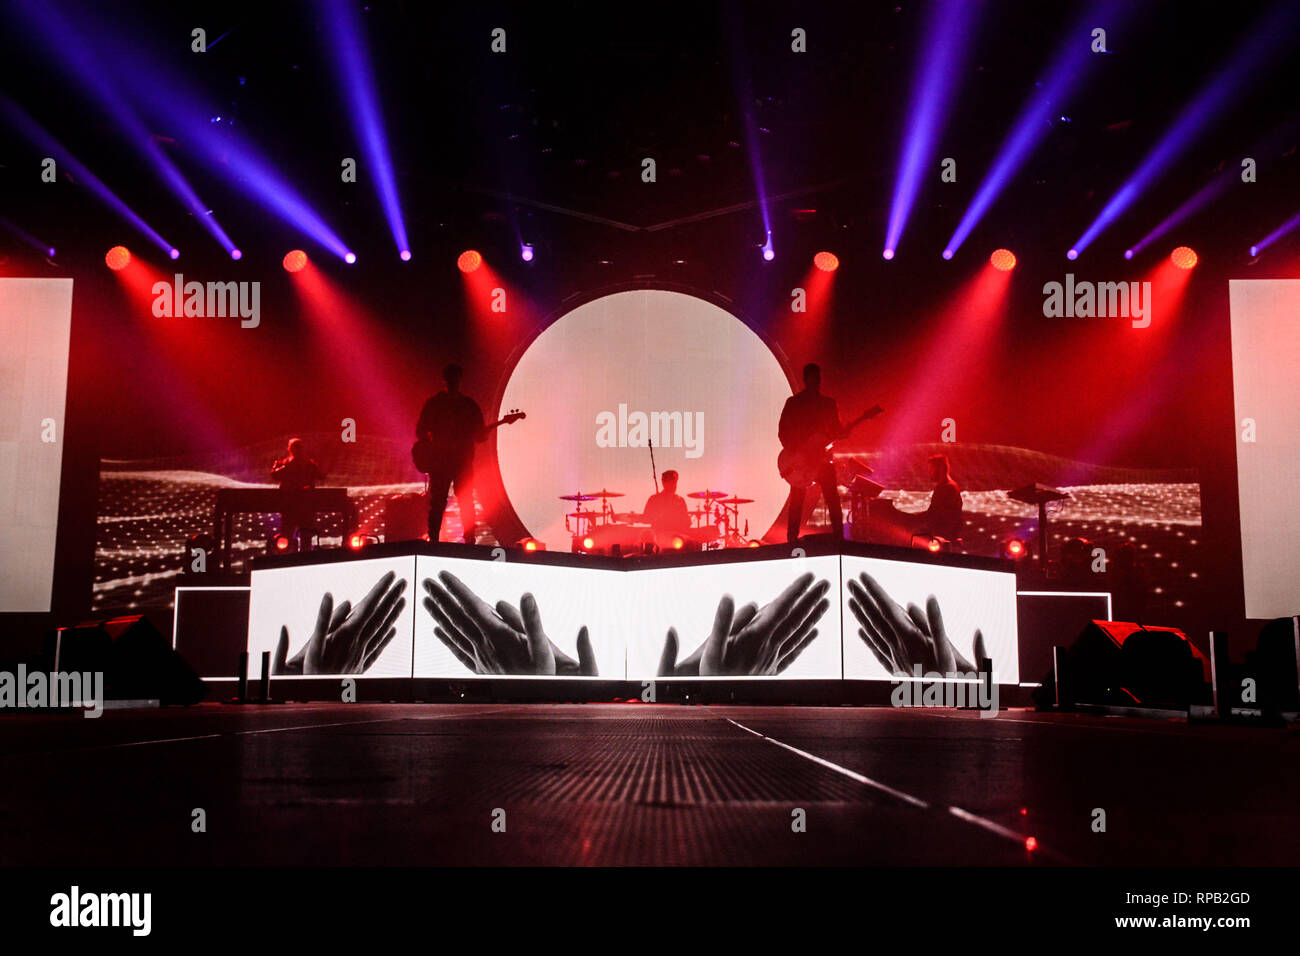 Negramaro Perform Live With Their Amore Che Torni Tour Indoor 2019 At Kioene Arena In Padova Stock Photo Alamy